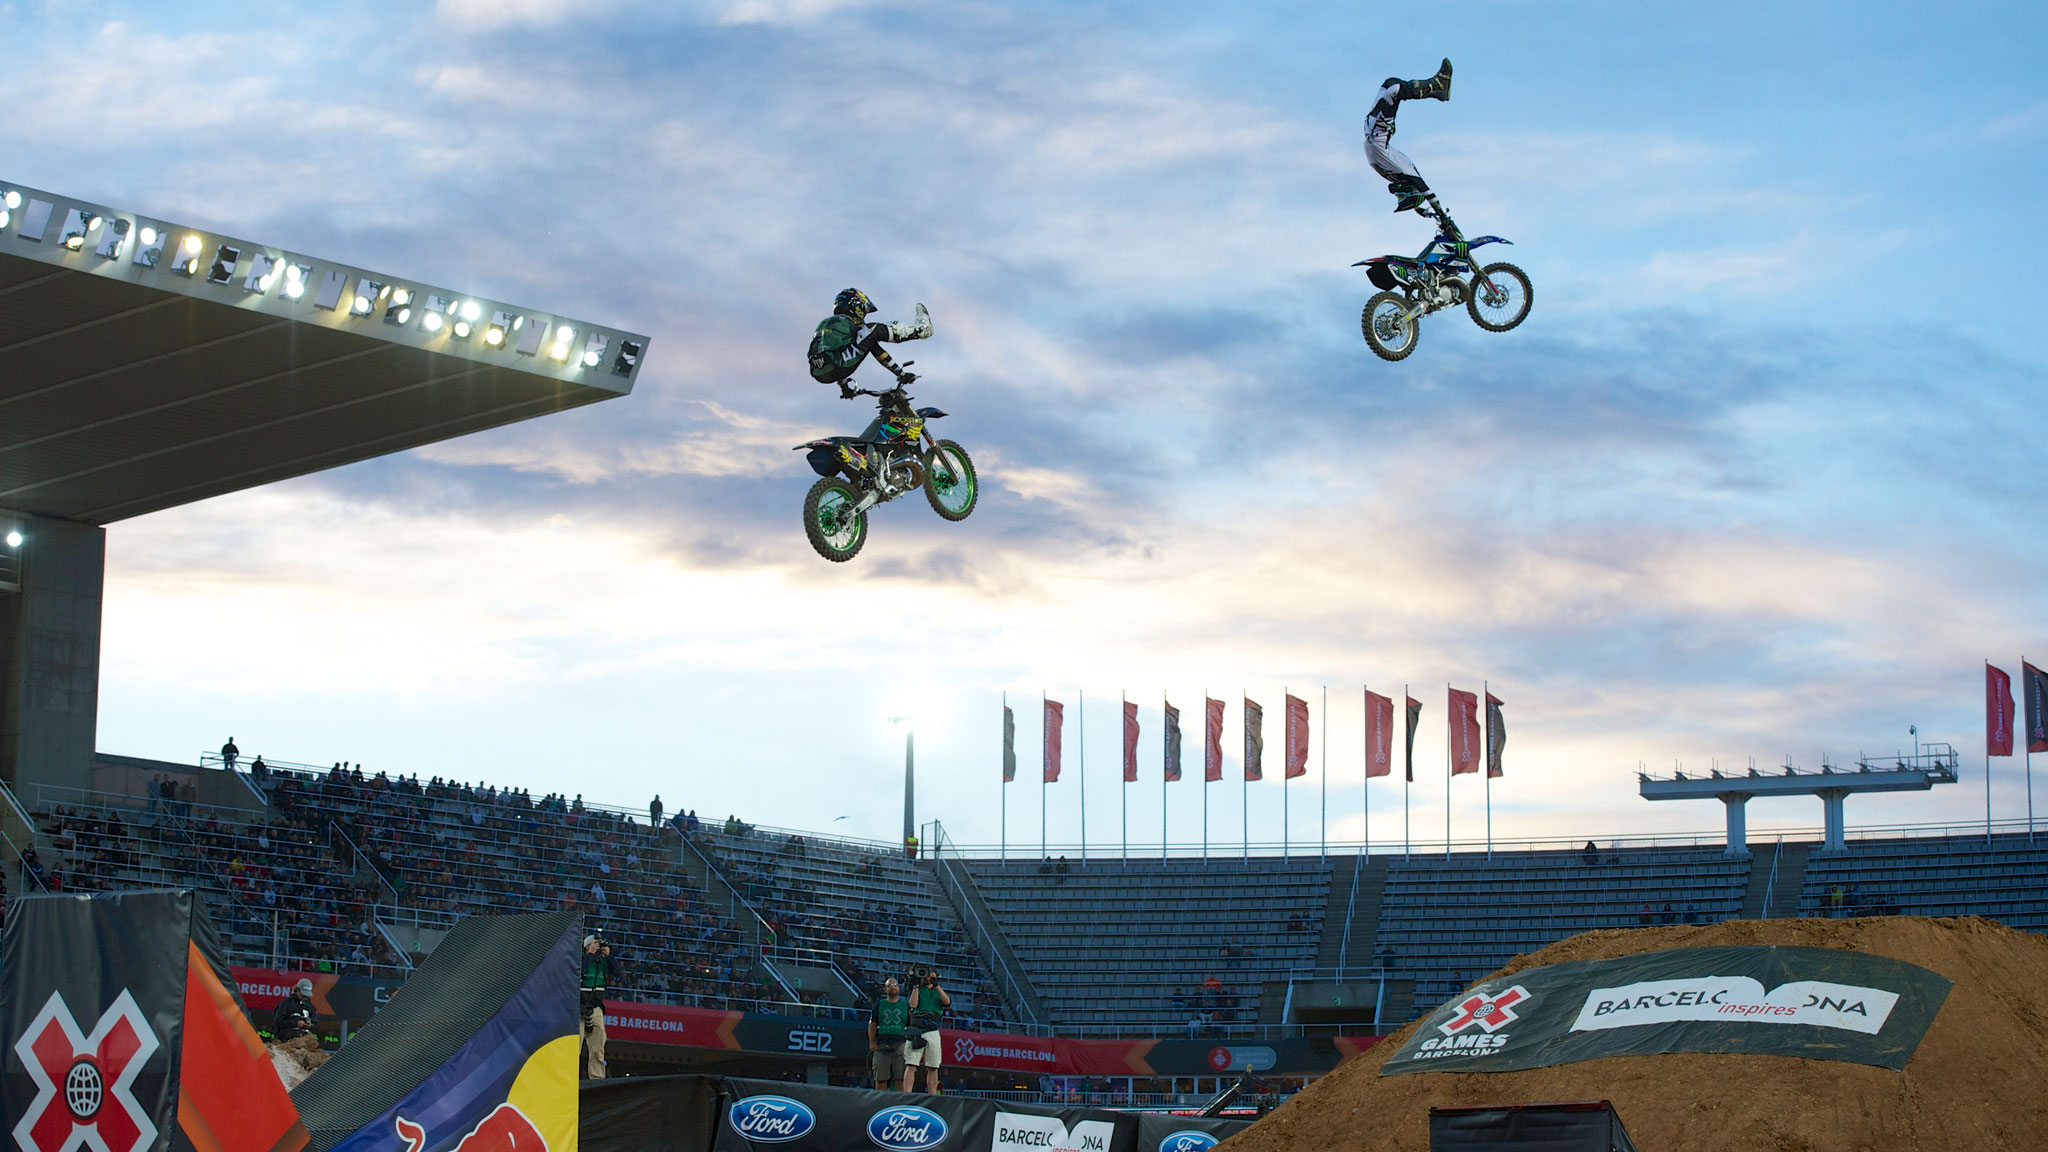 Adam Jones readies for Moto X Freestyle at X Games Munich